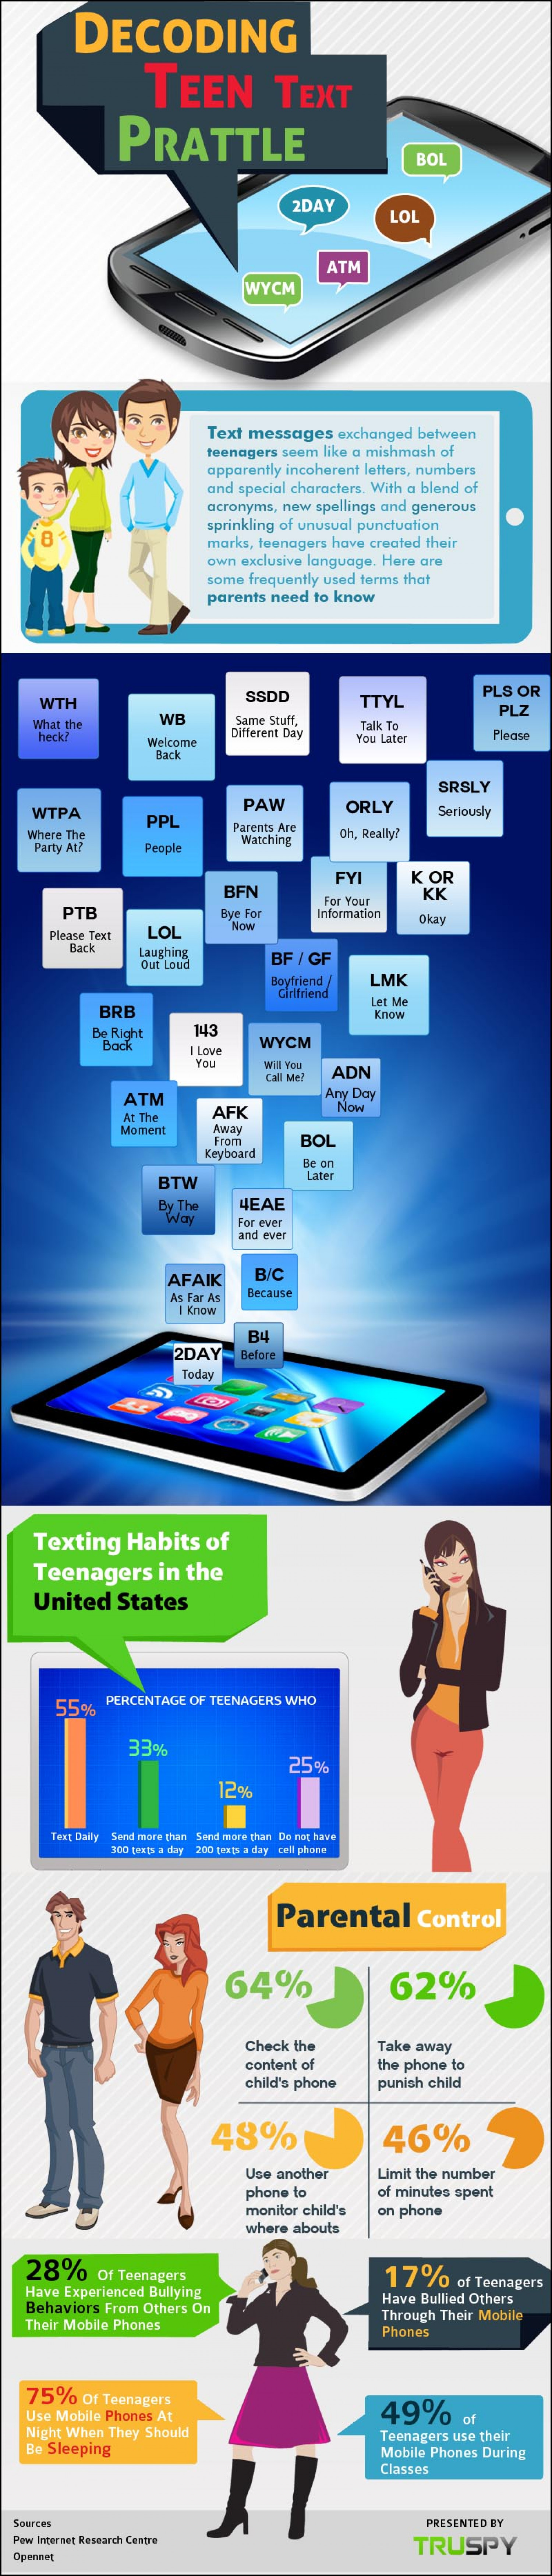 Decoding Teen Text Prattle Infographic